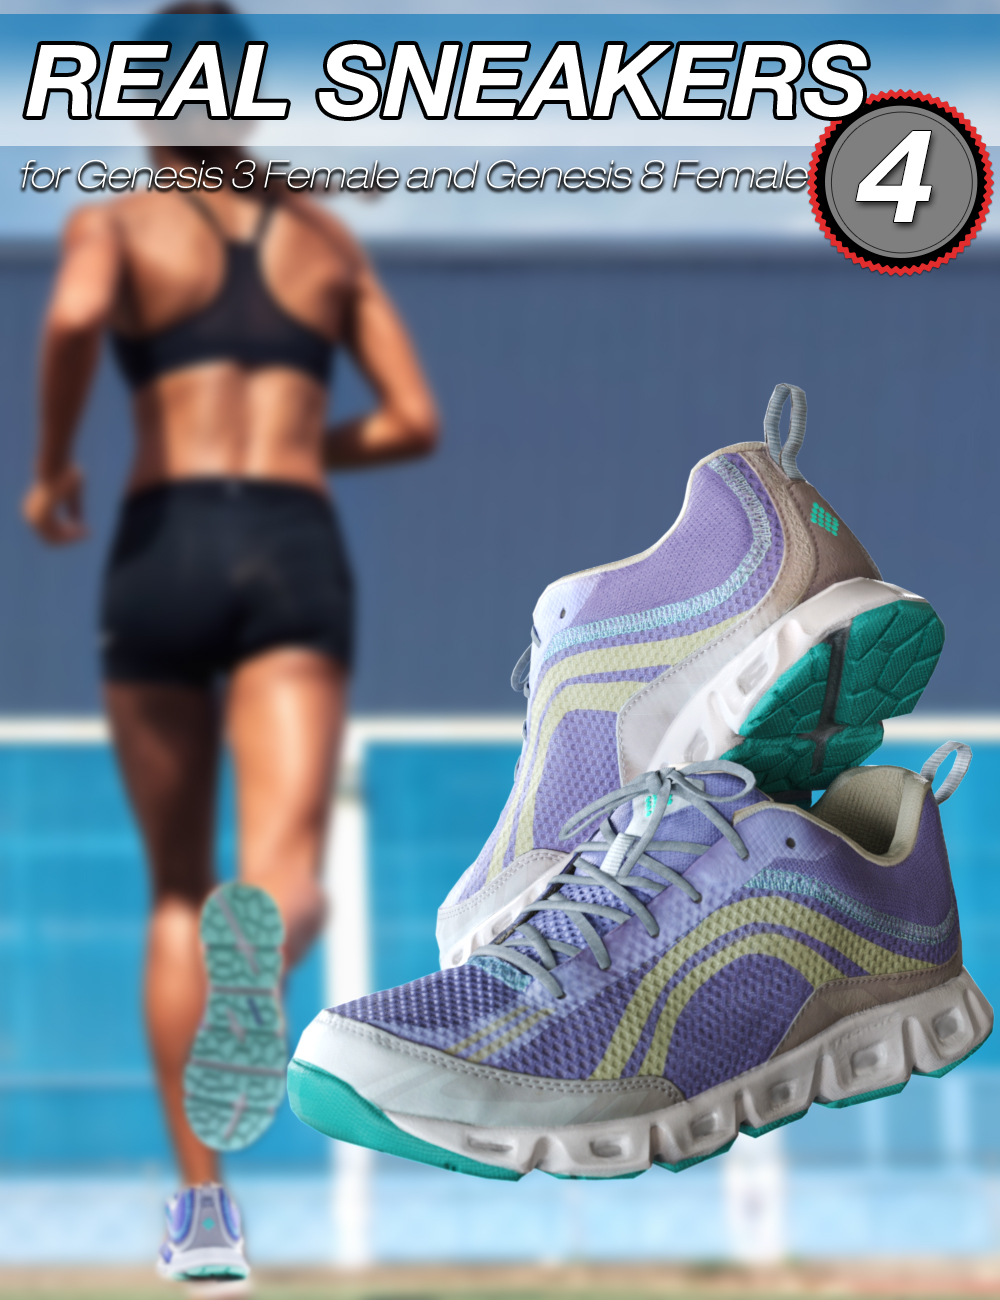 S3D Real Sneakers 4 for Genesis 3 and 8 Female(s) by: Slide3D, 3D Models by Daz 3D